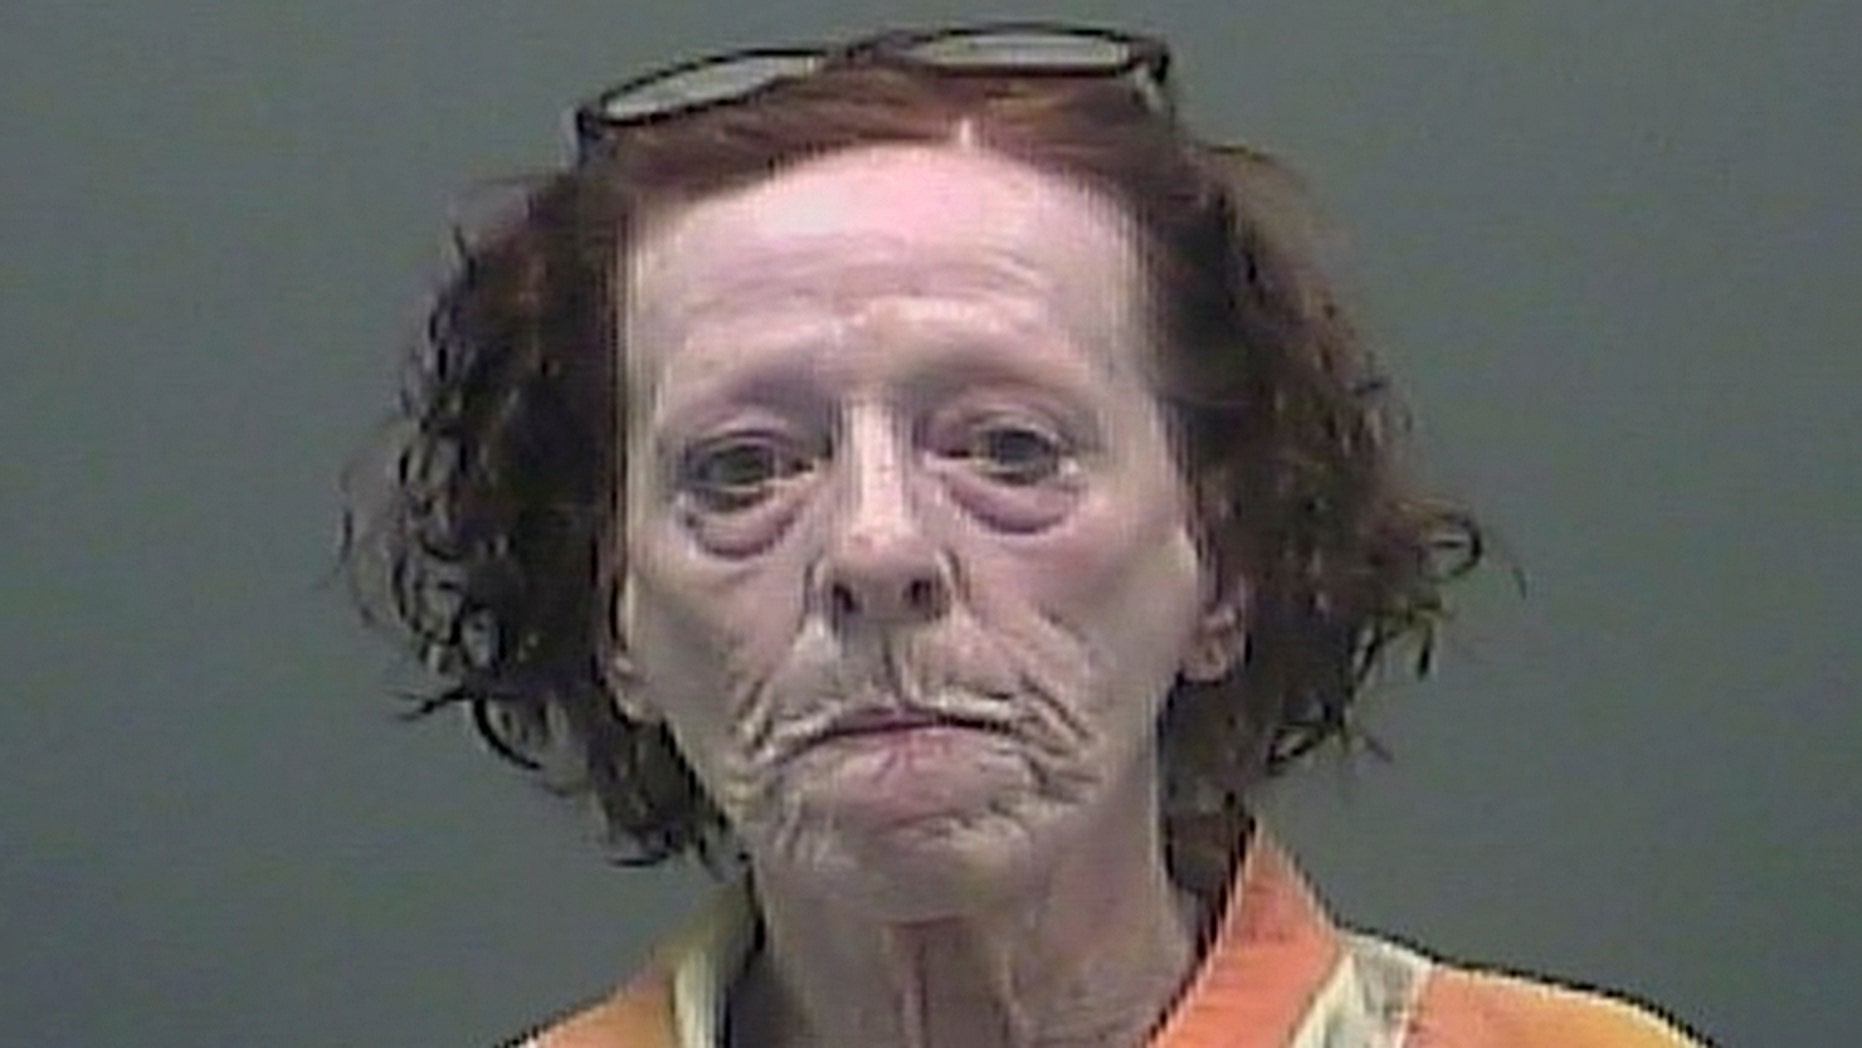 An Alabama woman was arrested after setting a ham on fire at a motel where she was living.